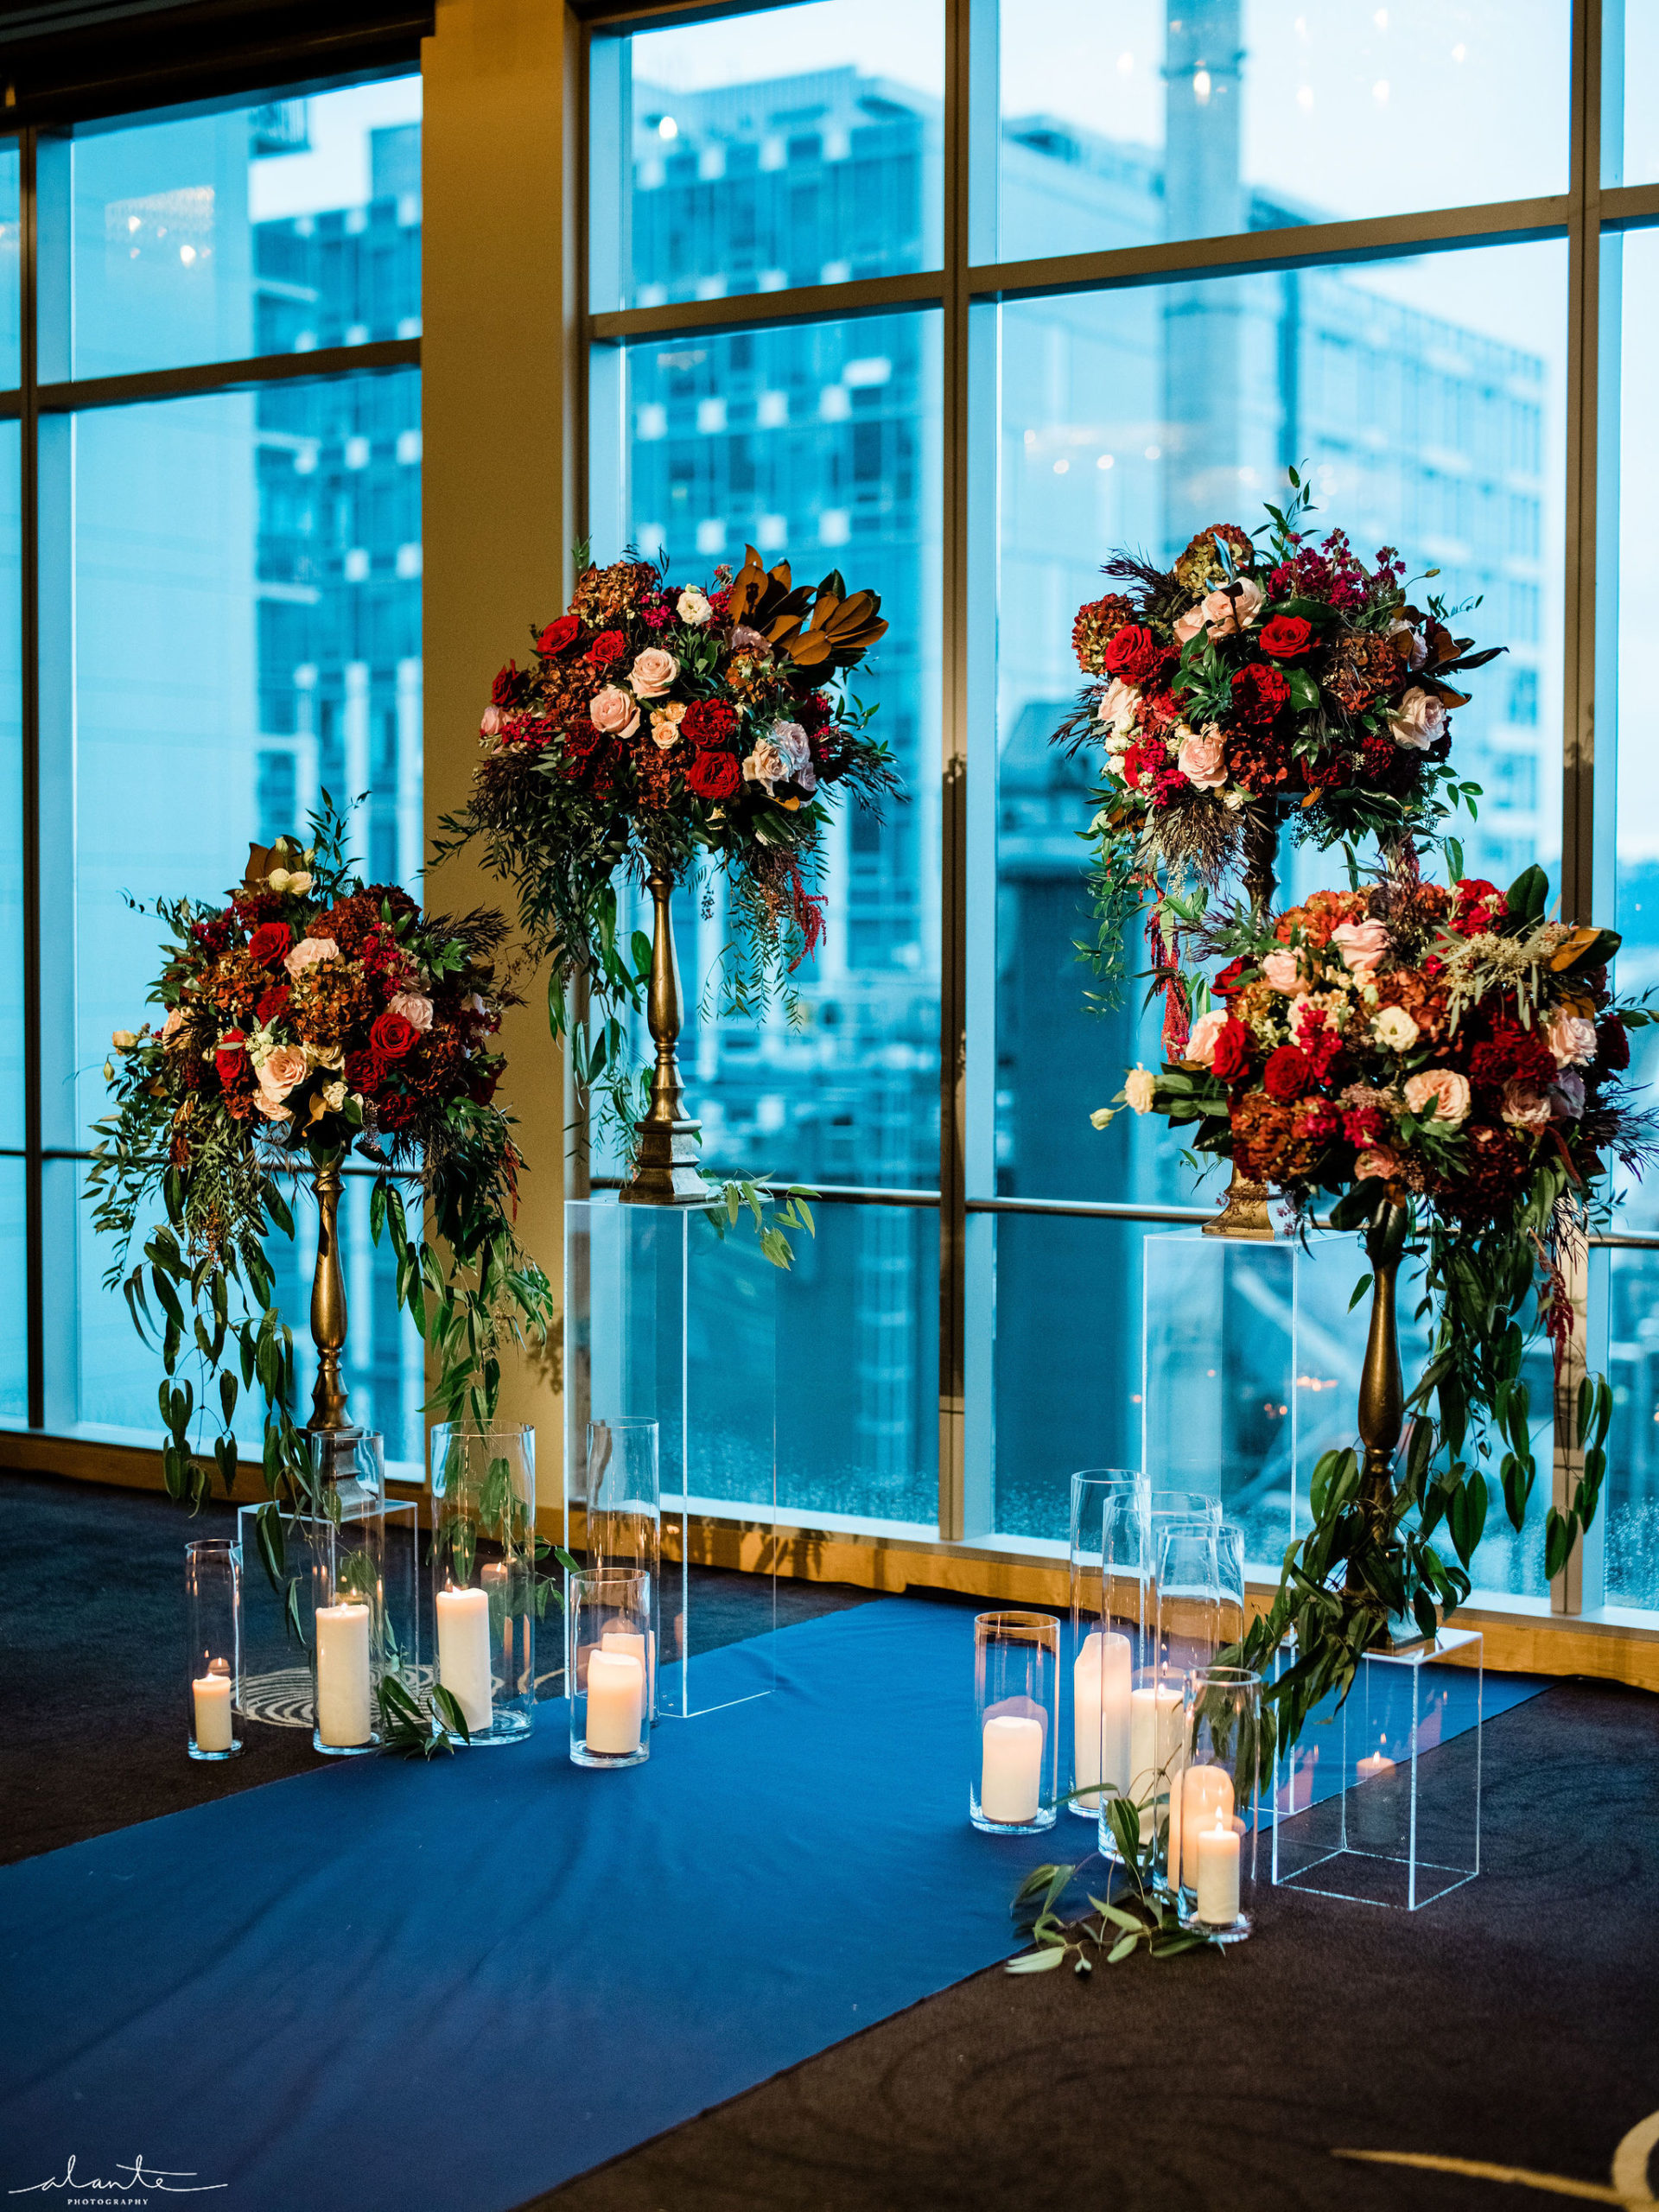 Four tall floral arrangements in red and blush winter flowers along with pillar candles and an unusual navy aisle runner.